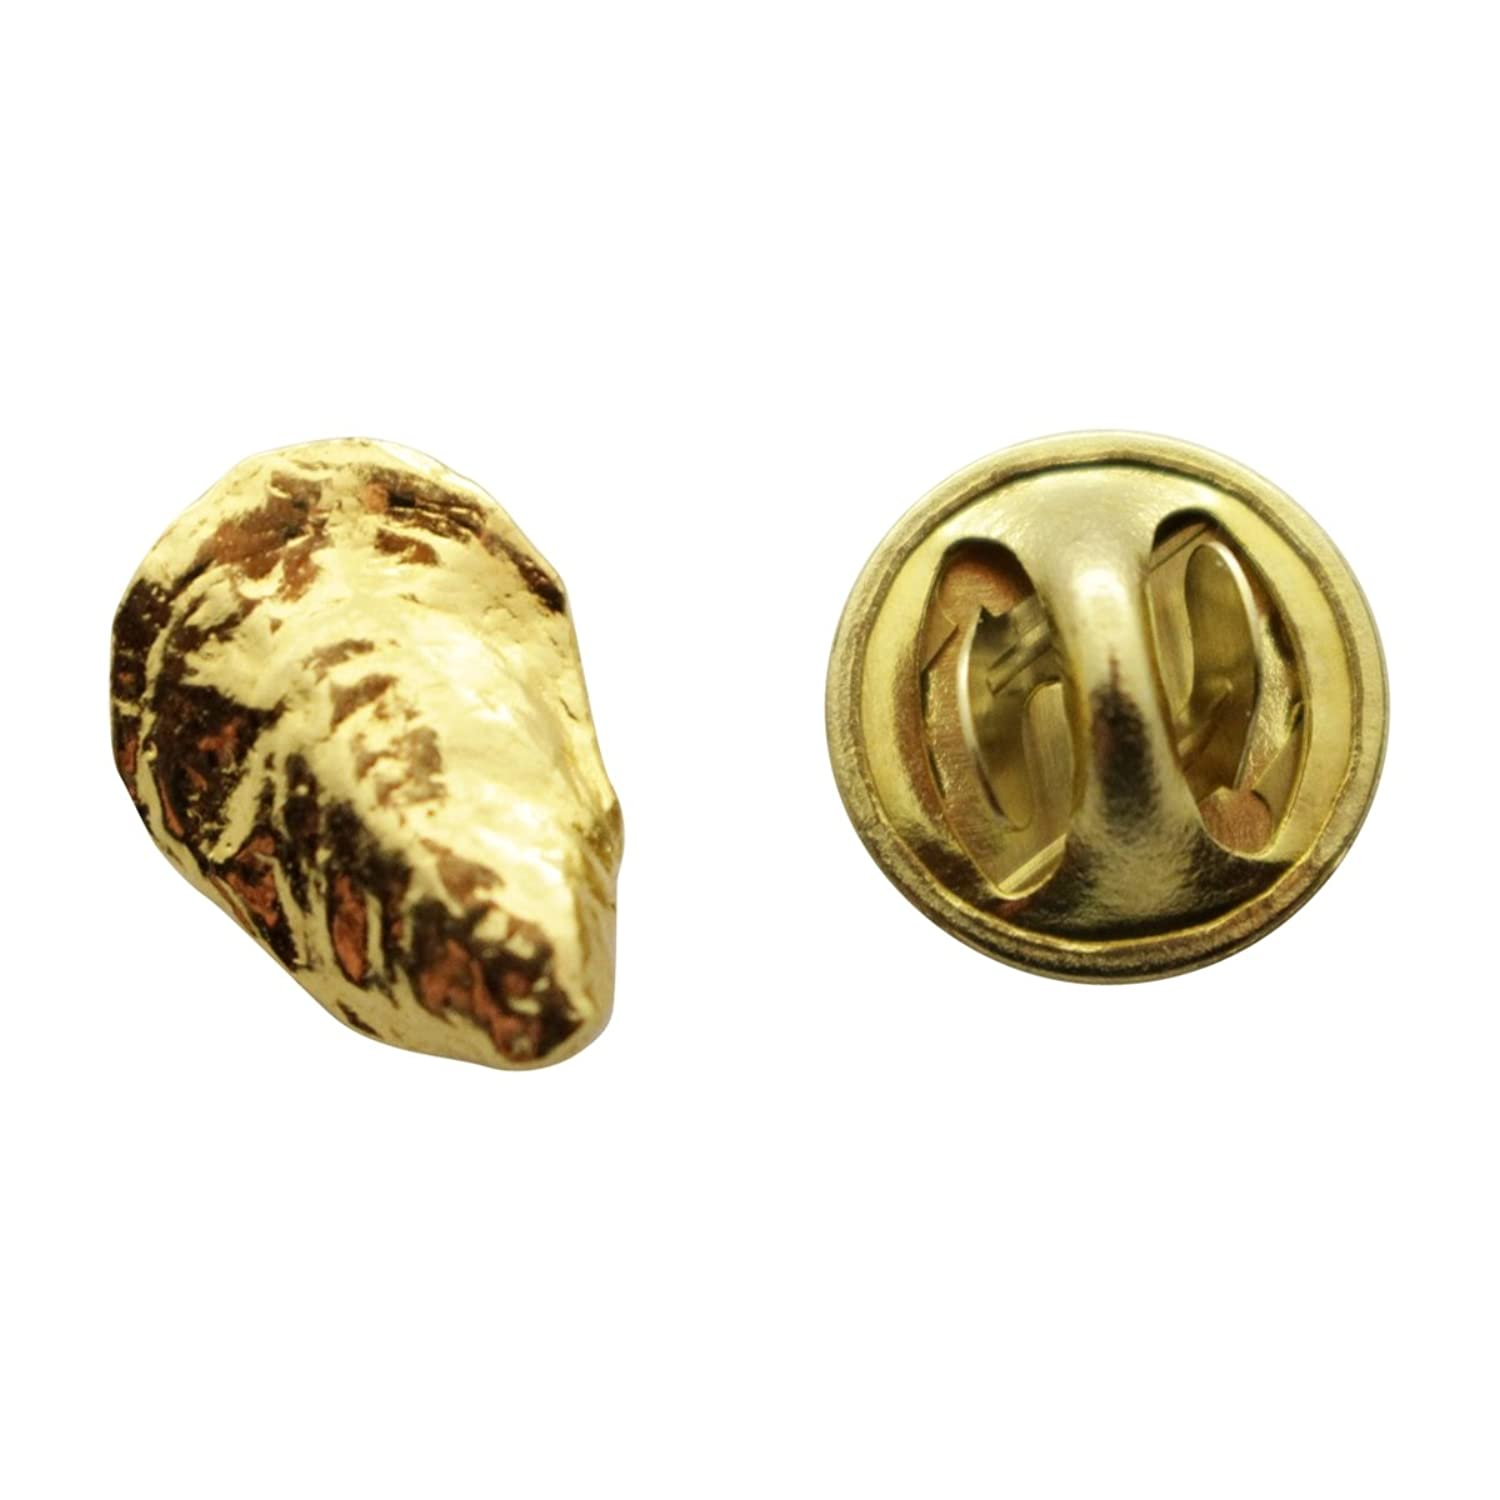 wholesale Oyster Mini Pin ~ 24K Gold ~ Miniature Lapel Pin ~ Sarah's Treats & Treasures for sale